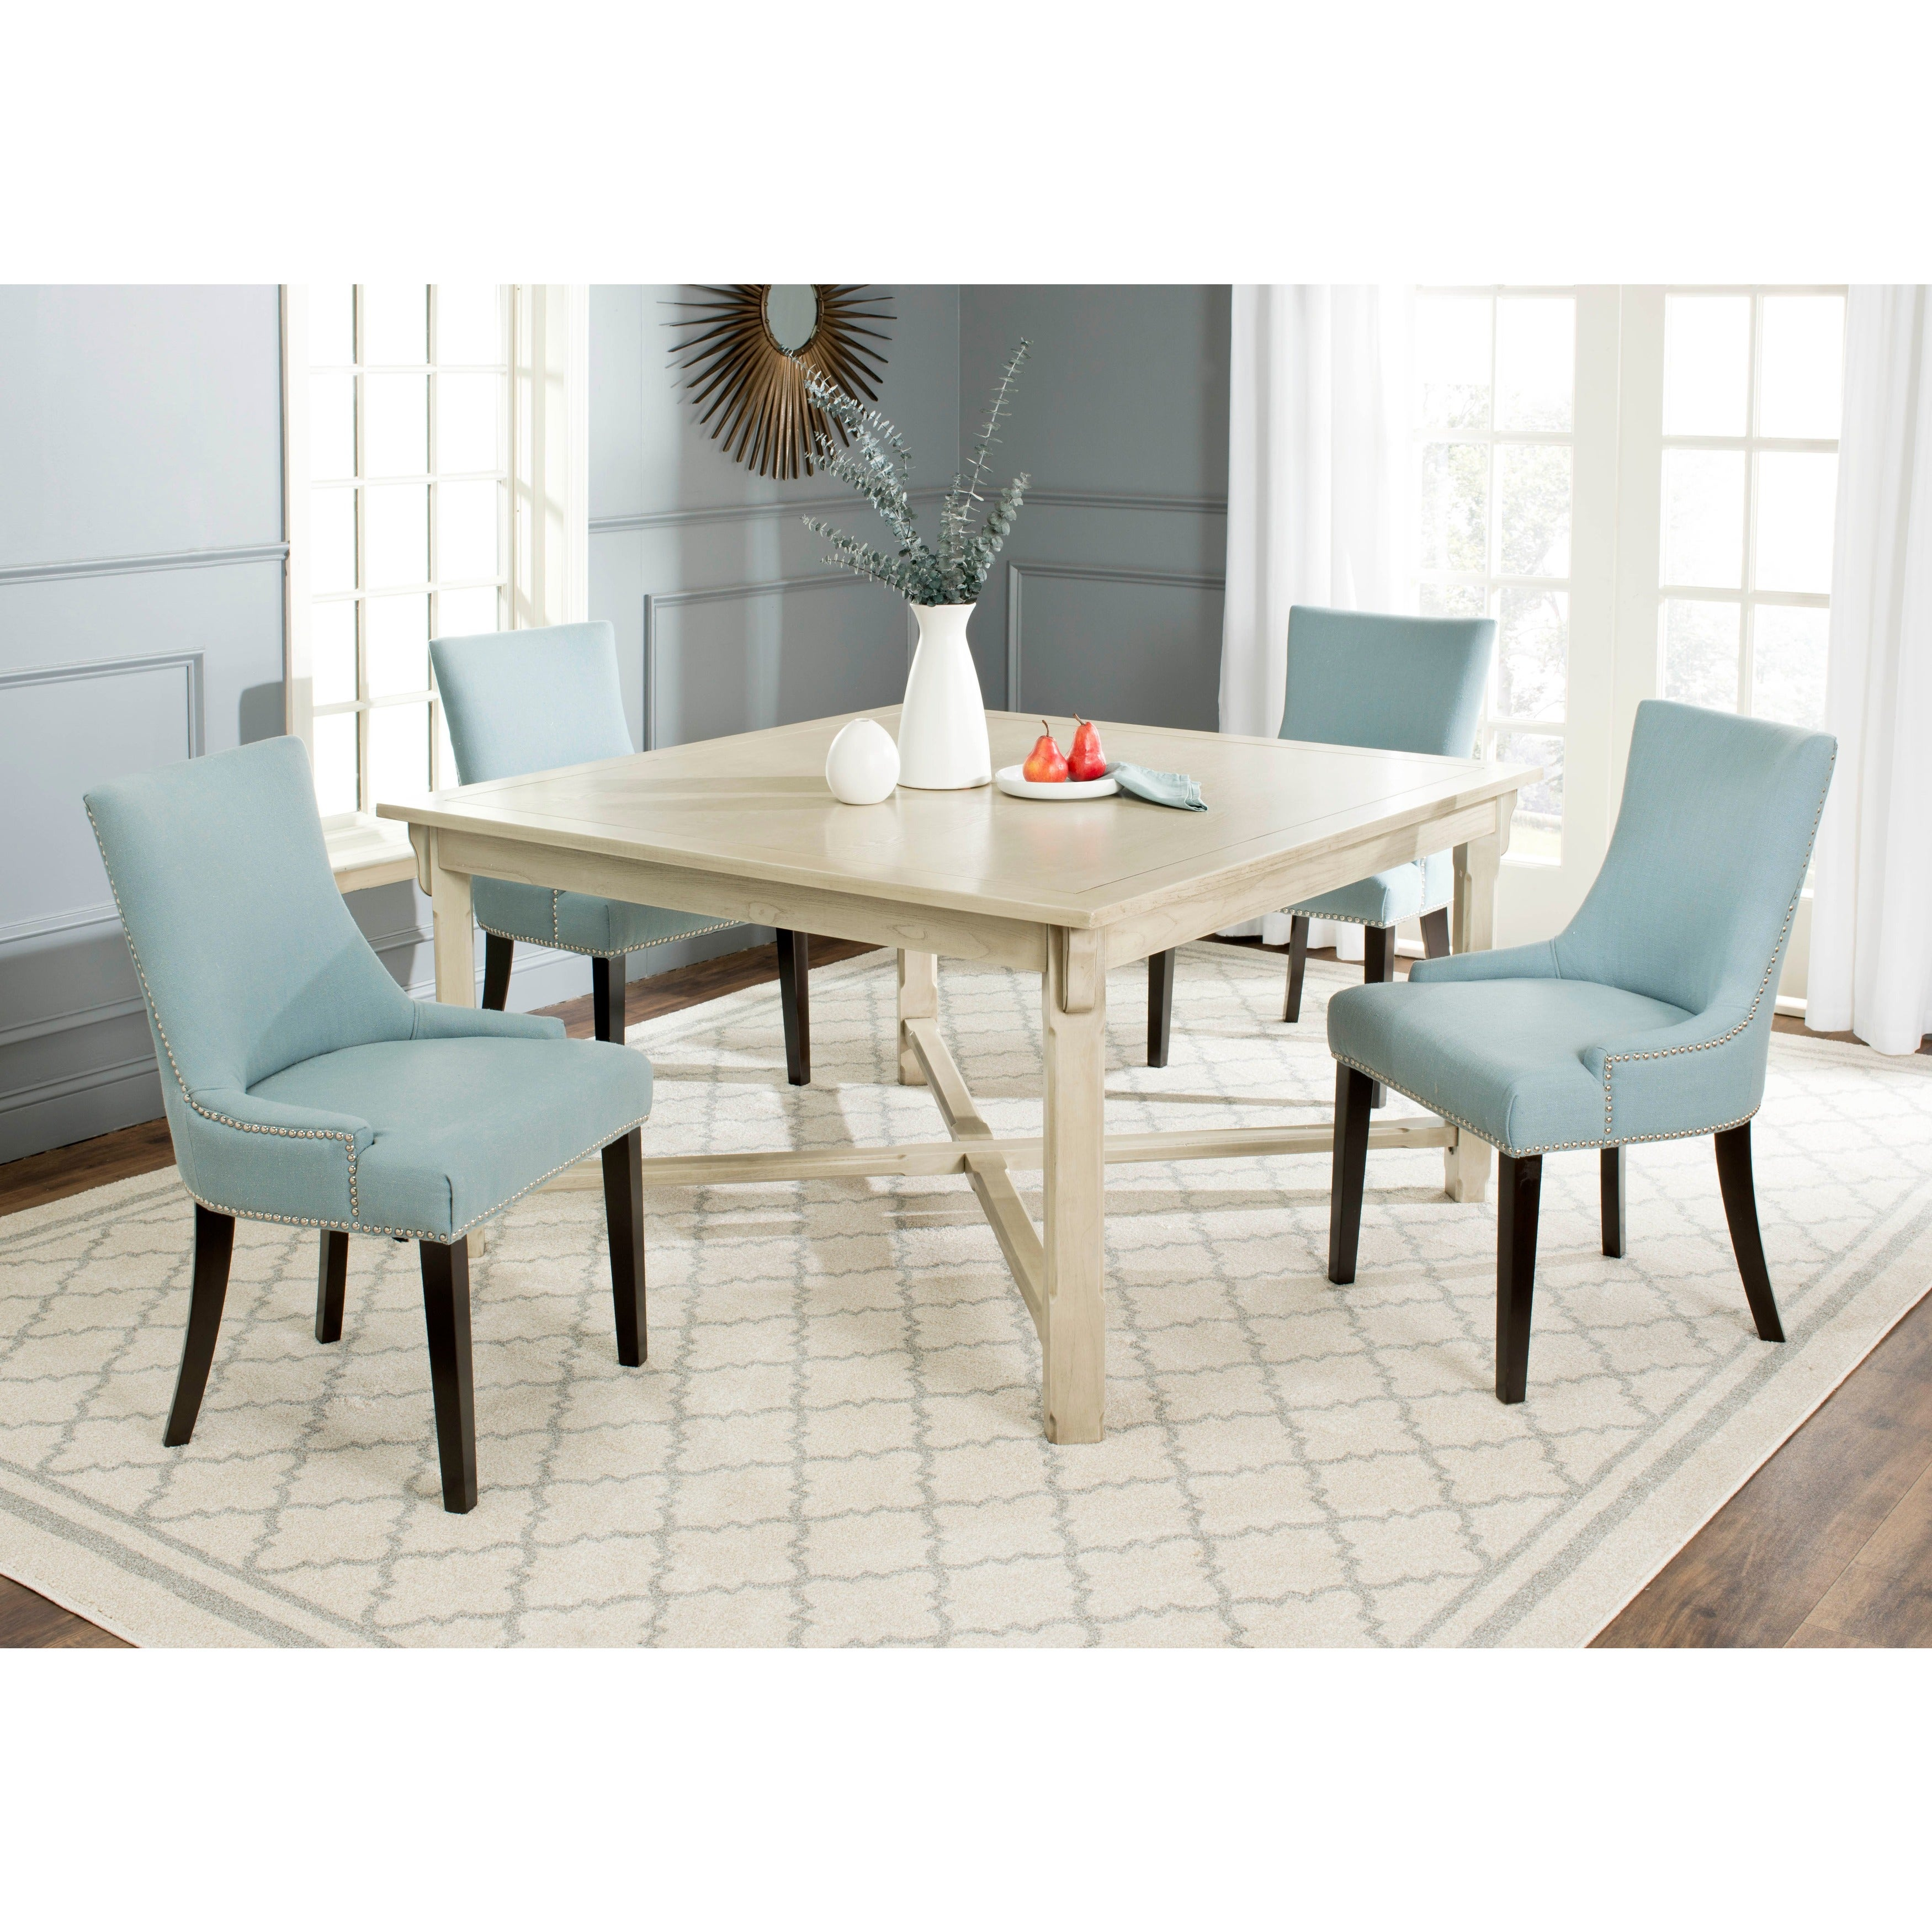 Safavieh Bleeker White Washed Dining Table On Free Shipping Today 9551972